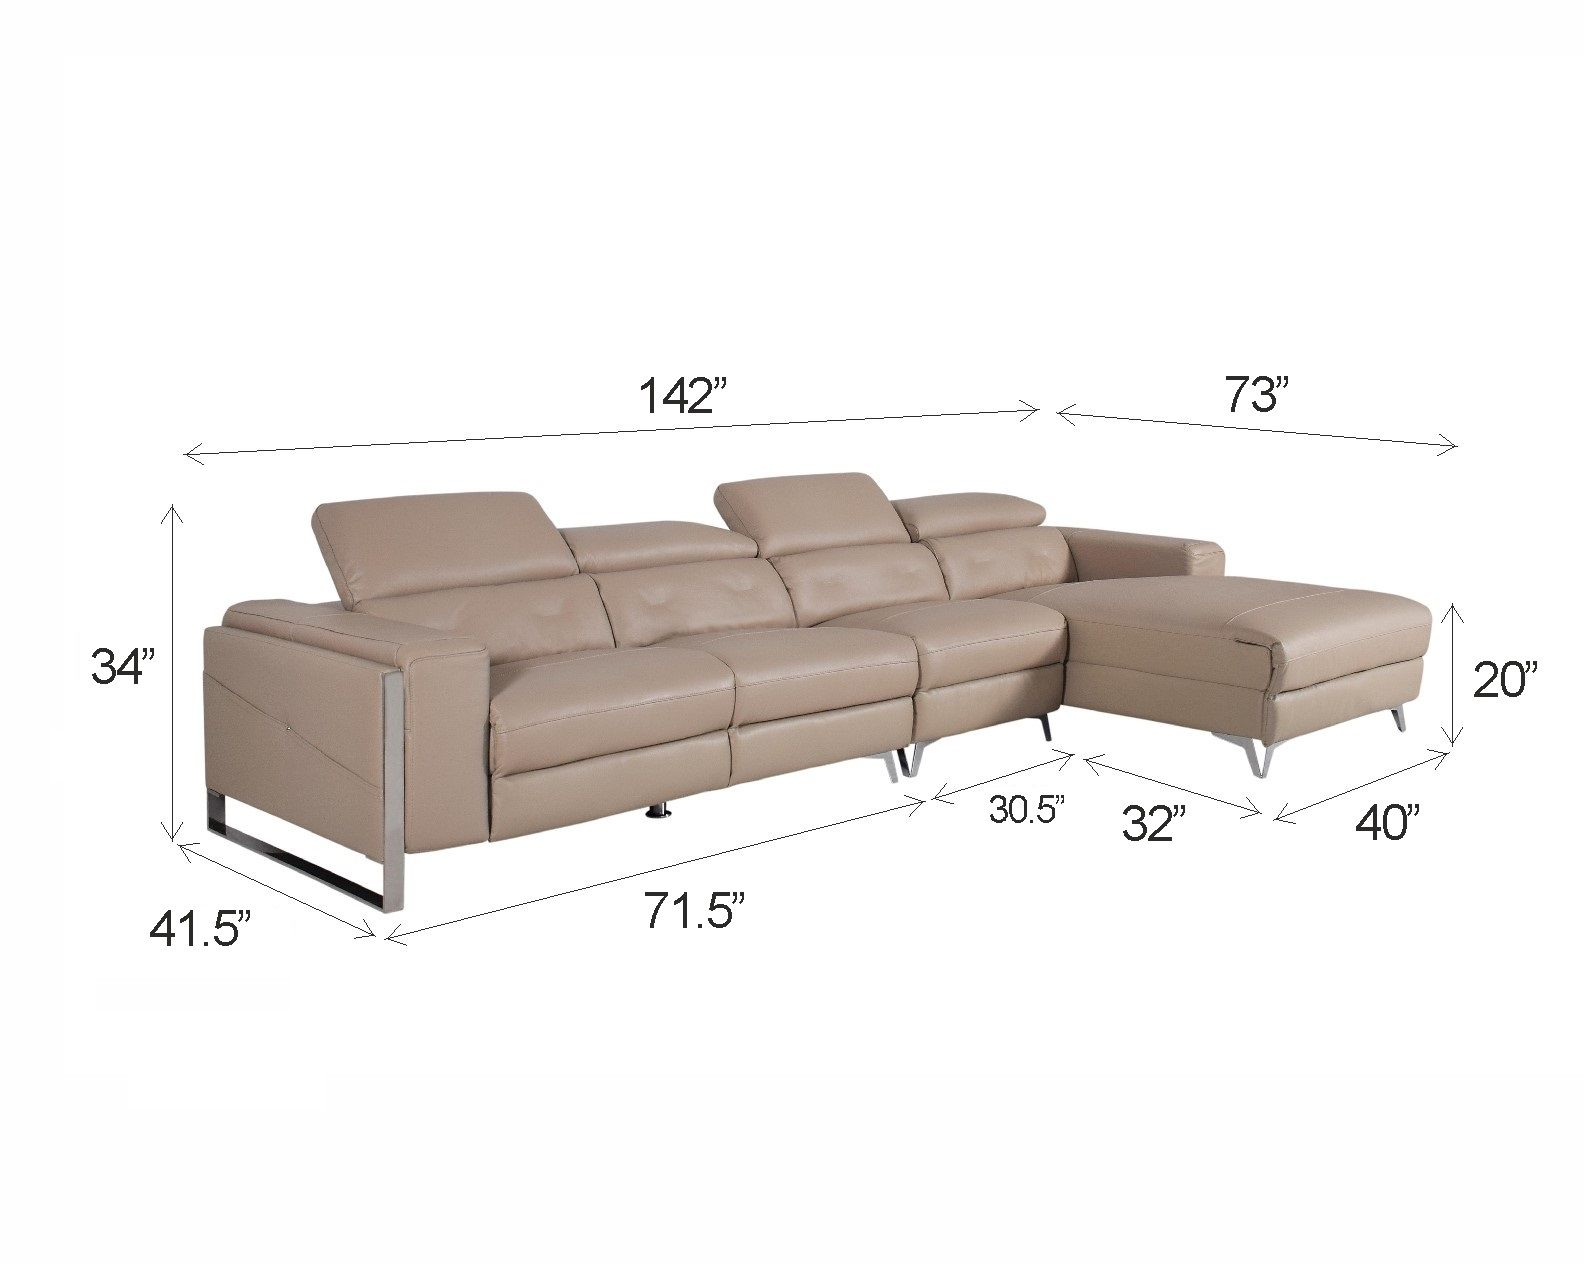 Furniturewalla Luxury Within Reach Vito Leather Sectional Sofa All Sofa Sets Sofas Living Leather Sectional Sofa Sectional Sofa Leather Sectional